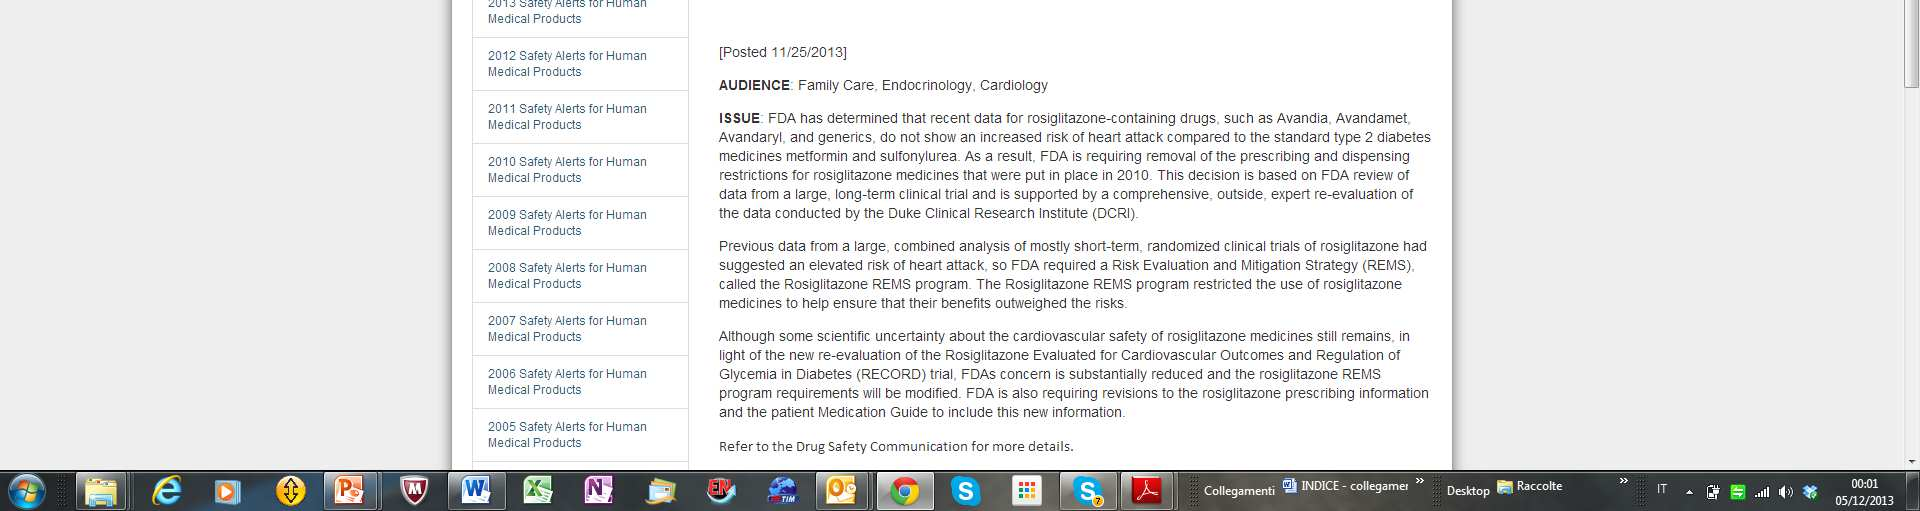 Rosiglitazone 2013 11/25/2013 -Drug Safety Communication-FDA]